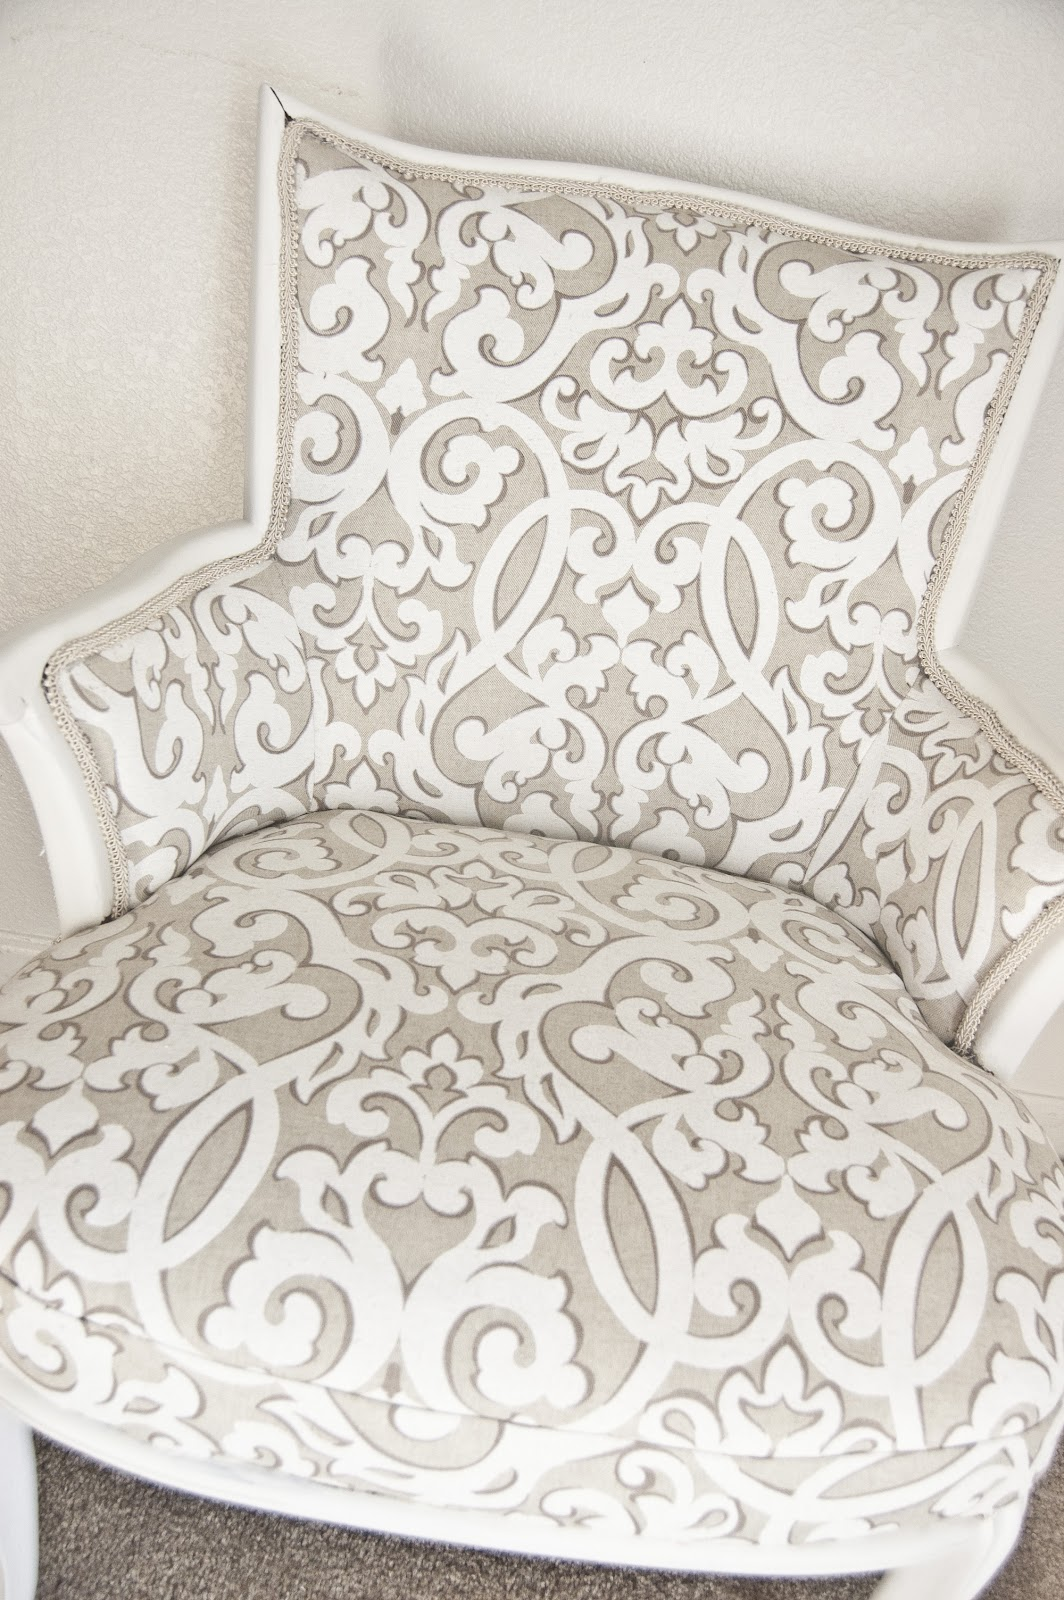 Chair Covers North East Swing Seat Under Pergola Fresh And Sweet Arm Redo Pattern Home House